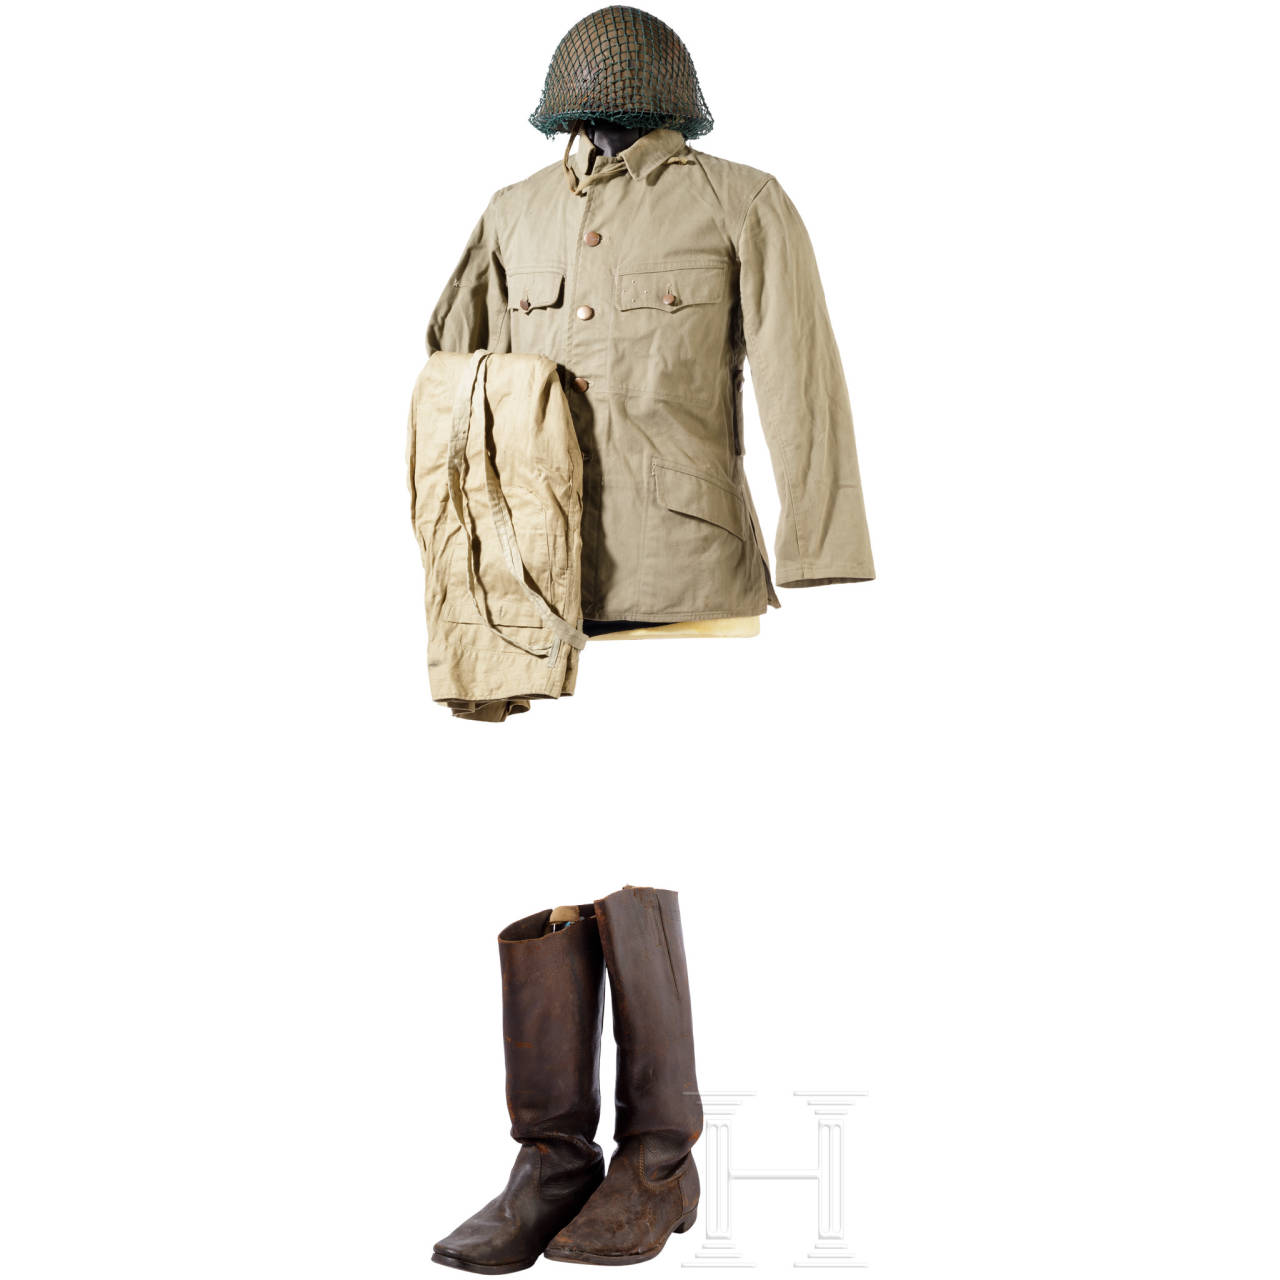 A uniform and equipment ensemble for an infantry soldier in the Pacific War, 1937 – 1945